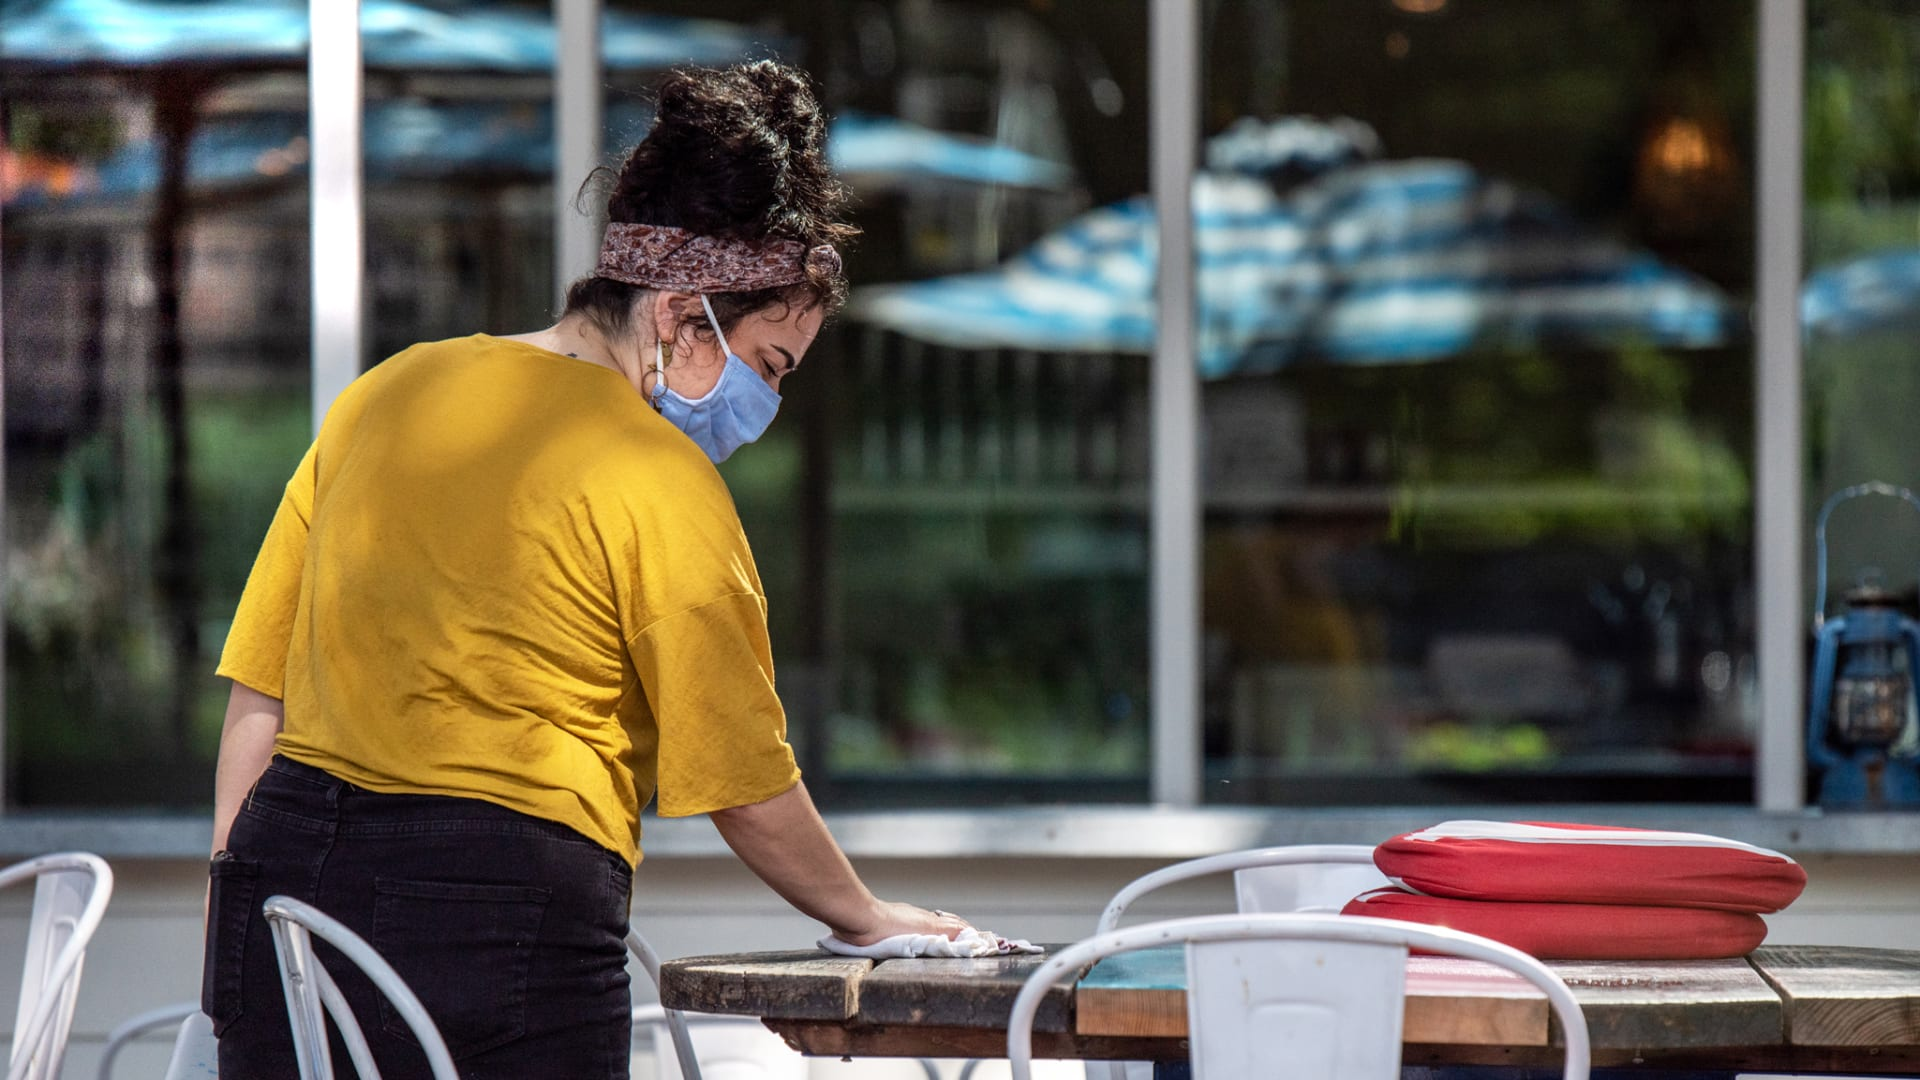 A restaurant worker cleans a table before opening in Austin on Thursday, June 25, 2020.